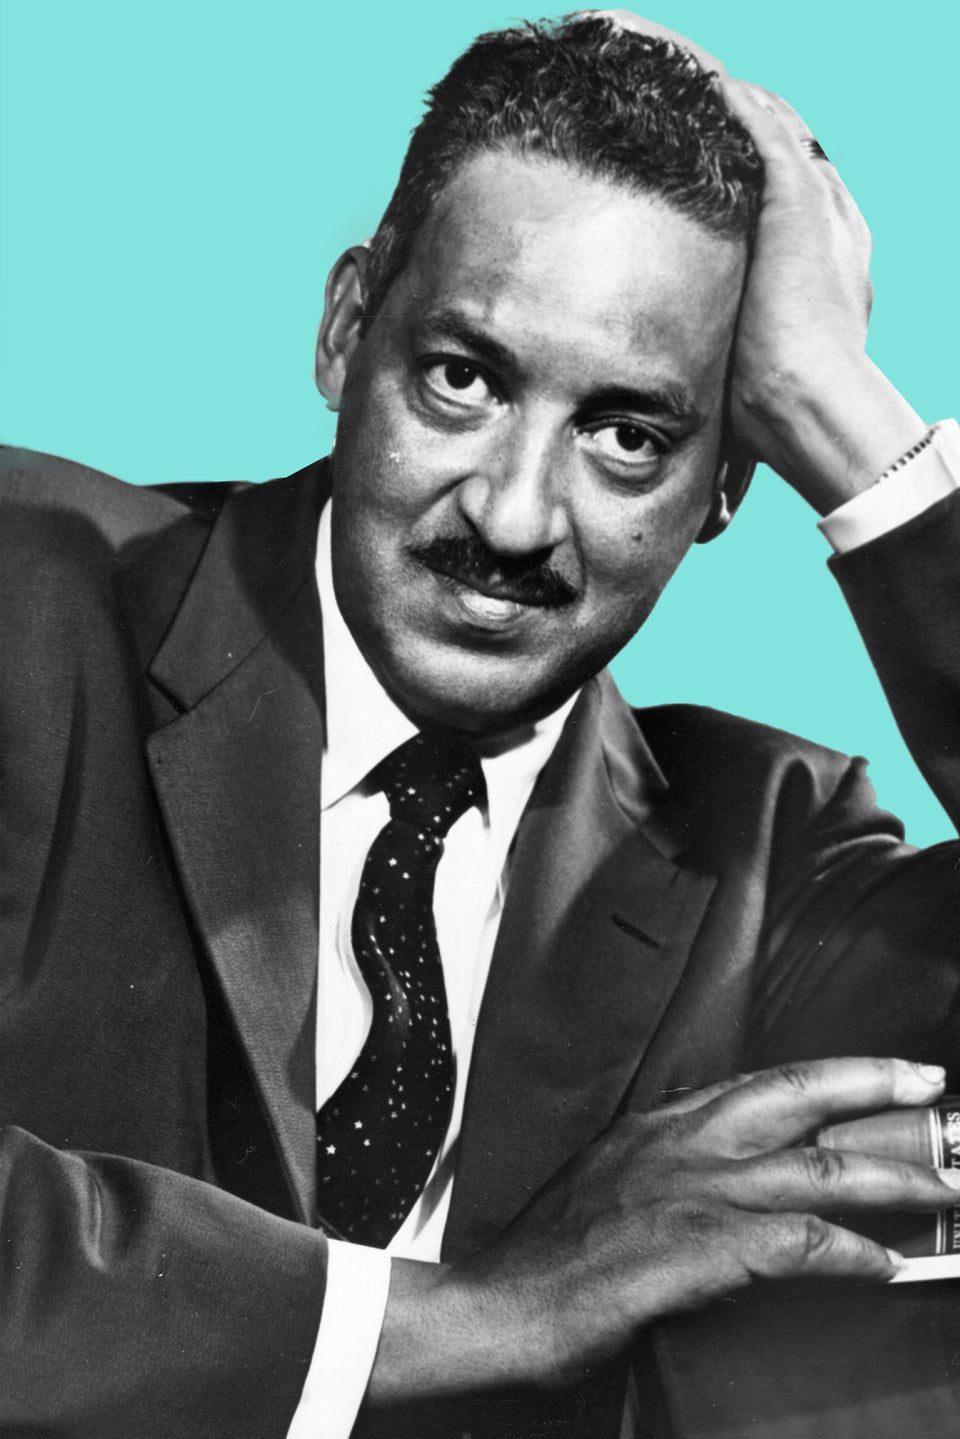 7 Things to Know About Thurgood Marshall Ahead of 'Marshall' Biopic